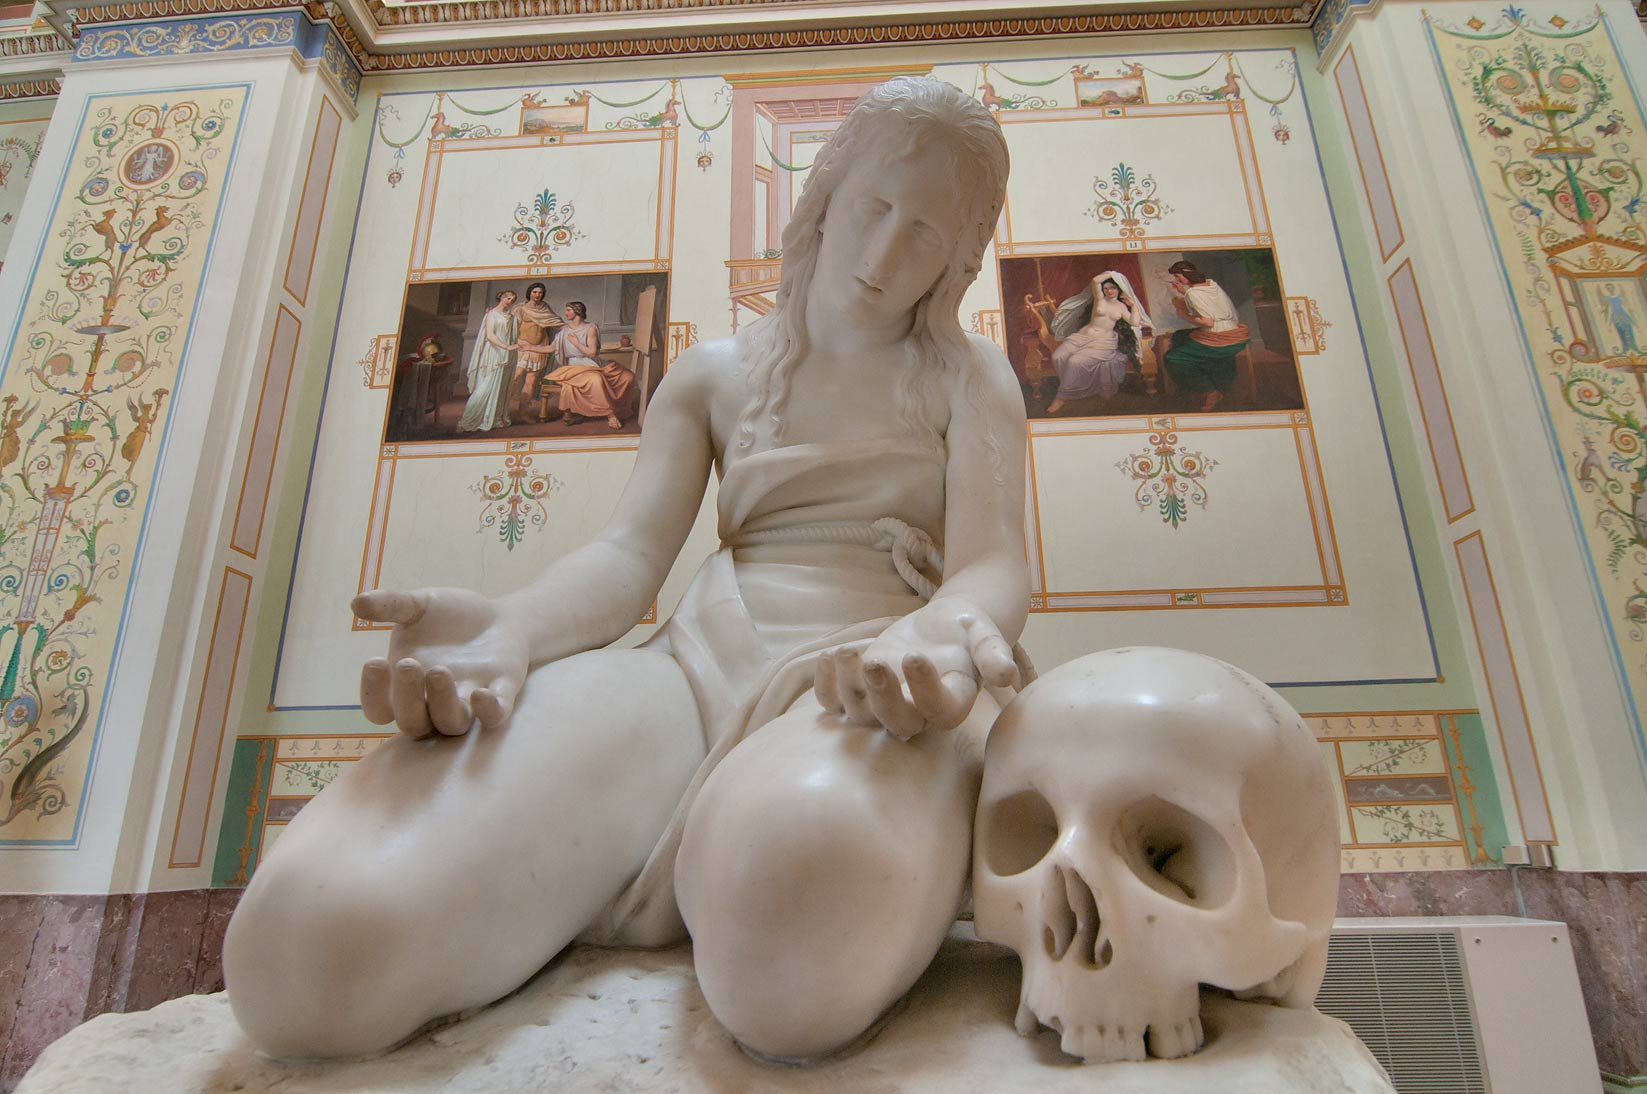 Marble statue of a woman with a skull in a...Museum. St.Petersburg, Russia